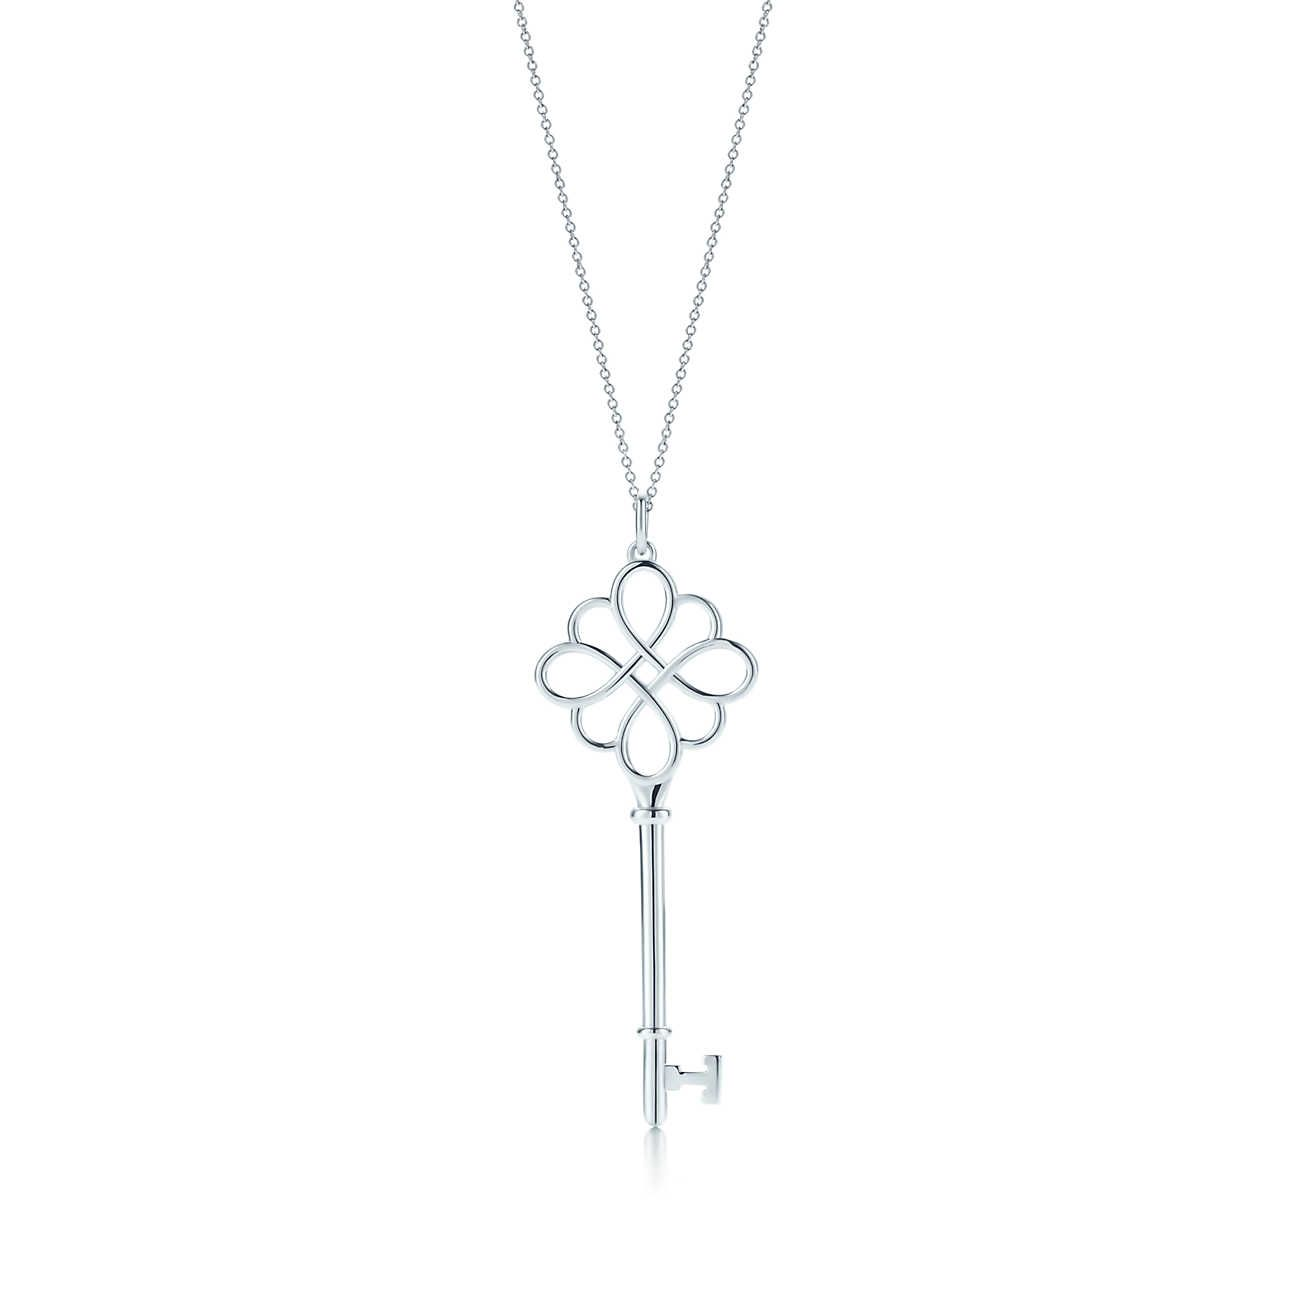 Tiffany Keys knot key pendant in silver with Tiffany Blue enamel finish, large Tiffany & Co.